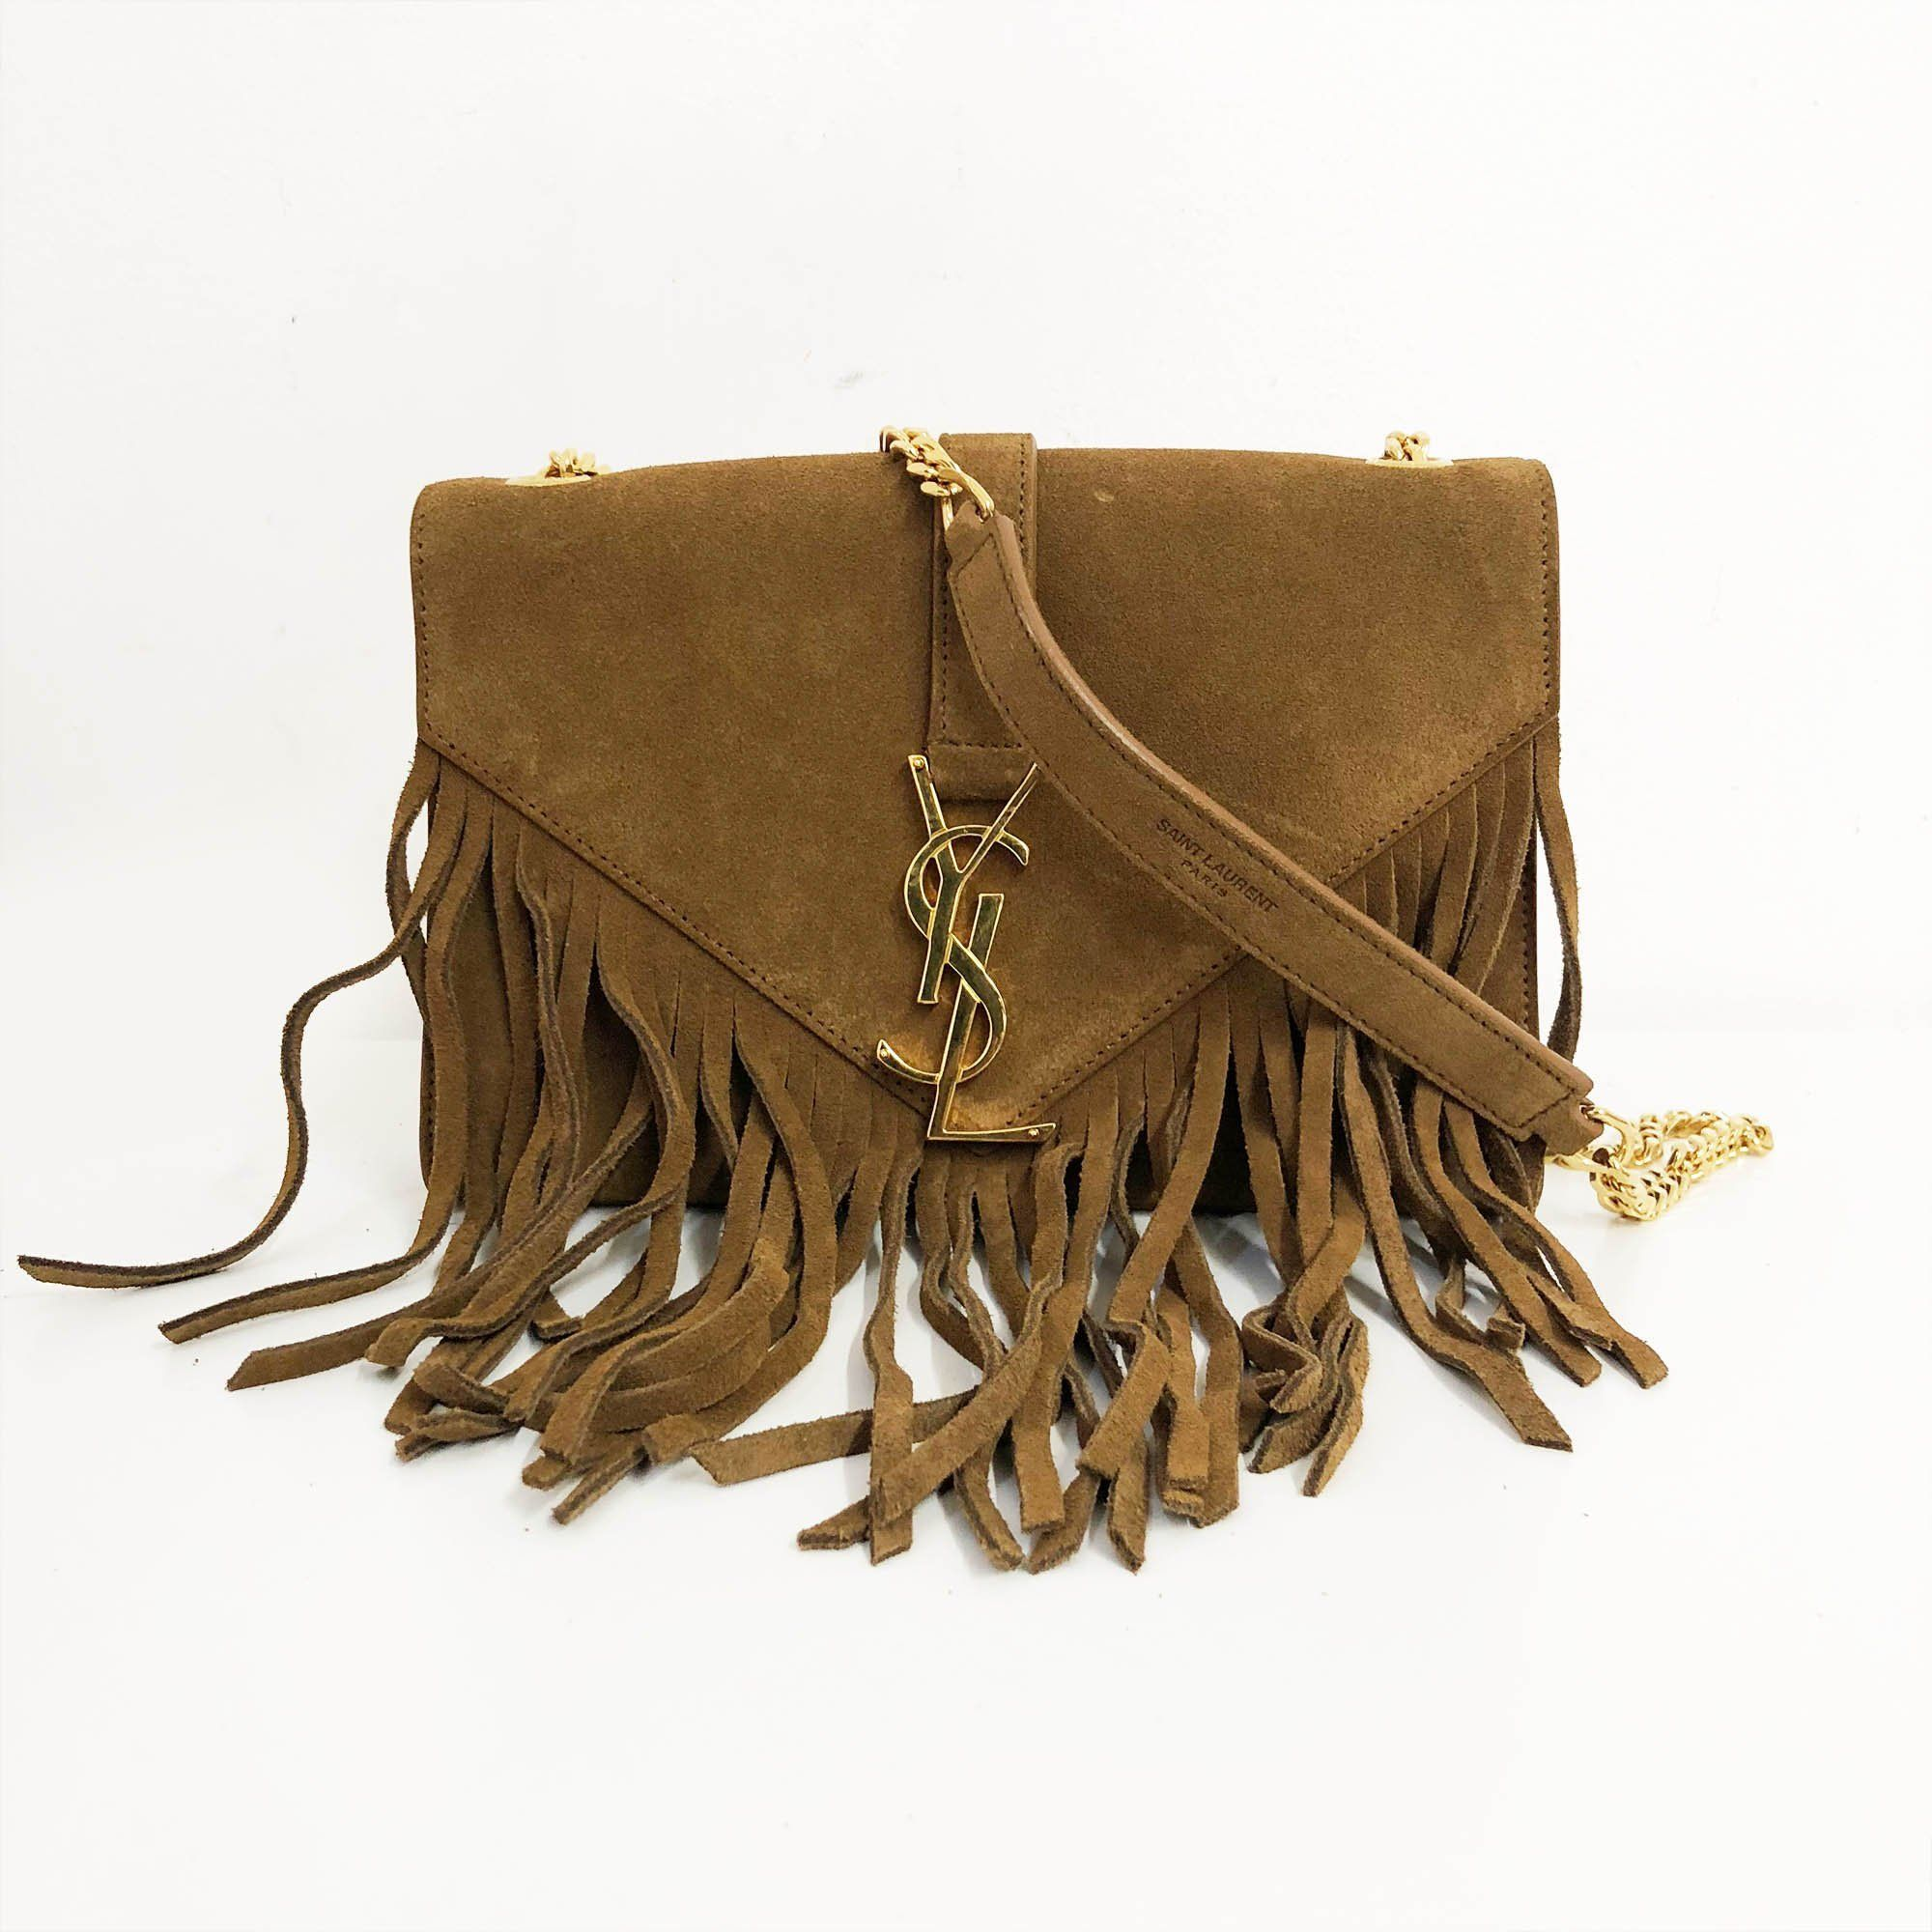 b92b423561 Yves Saint Laurent Suede Fringe Monogram Crossbody Bag – Garderobe